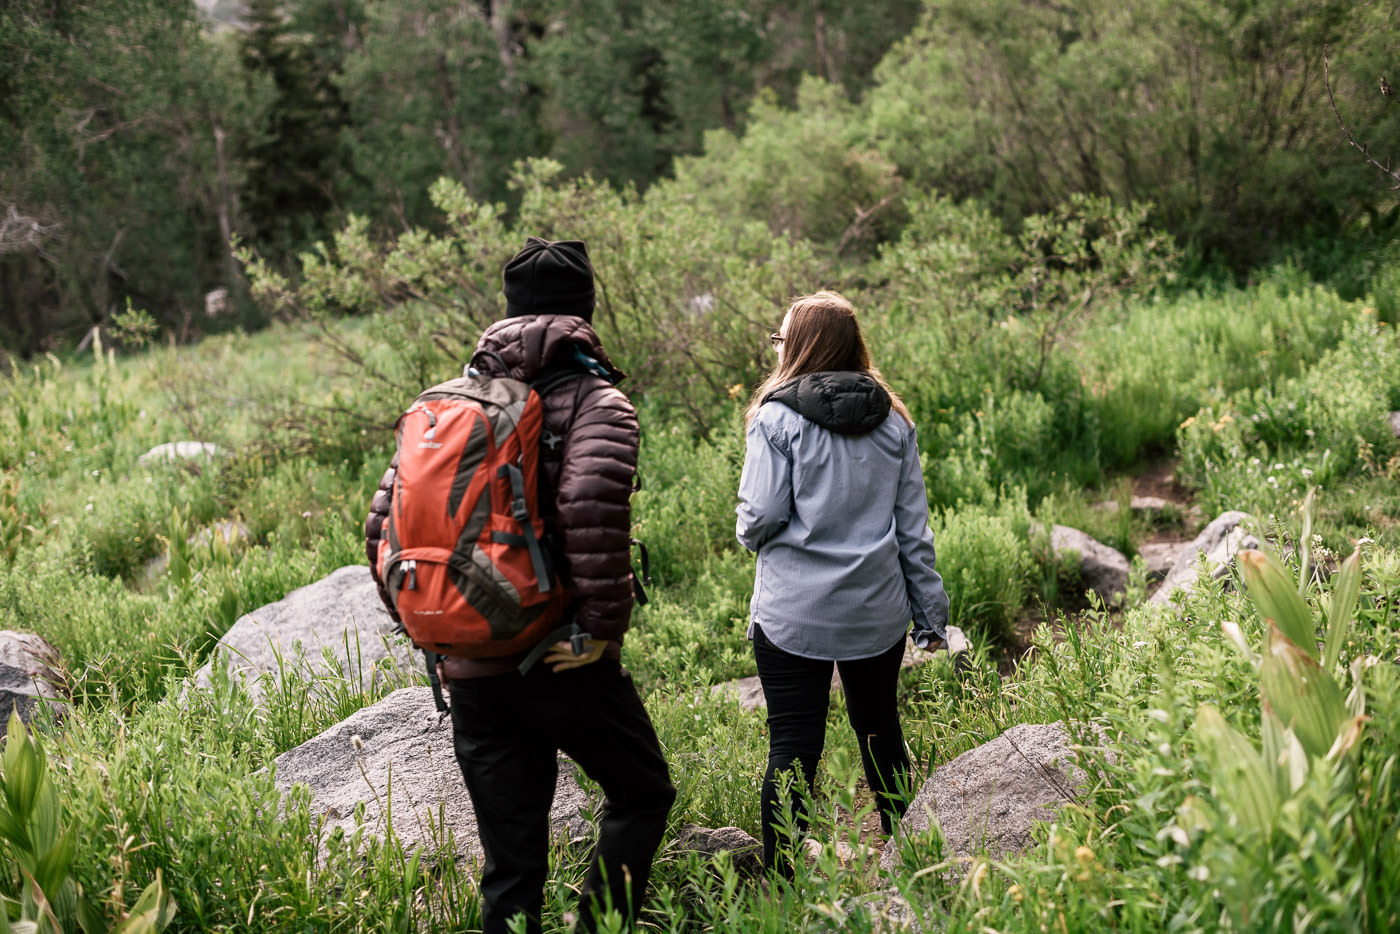 Make it a Backcountry Elopement IN THE US AND CANADA + $500 - NO ADDITIONAL TRAVEL COSTSMore info to come!